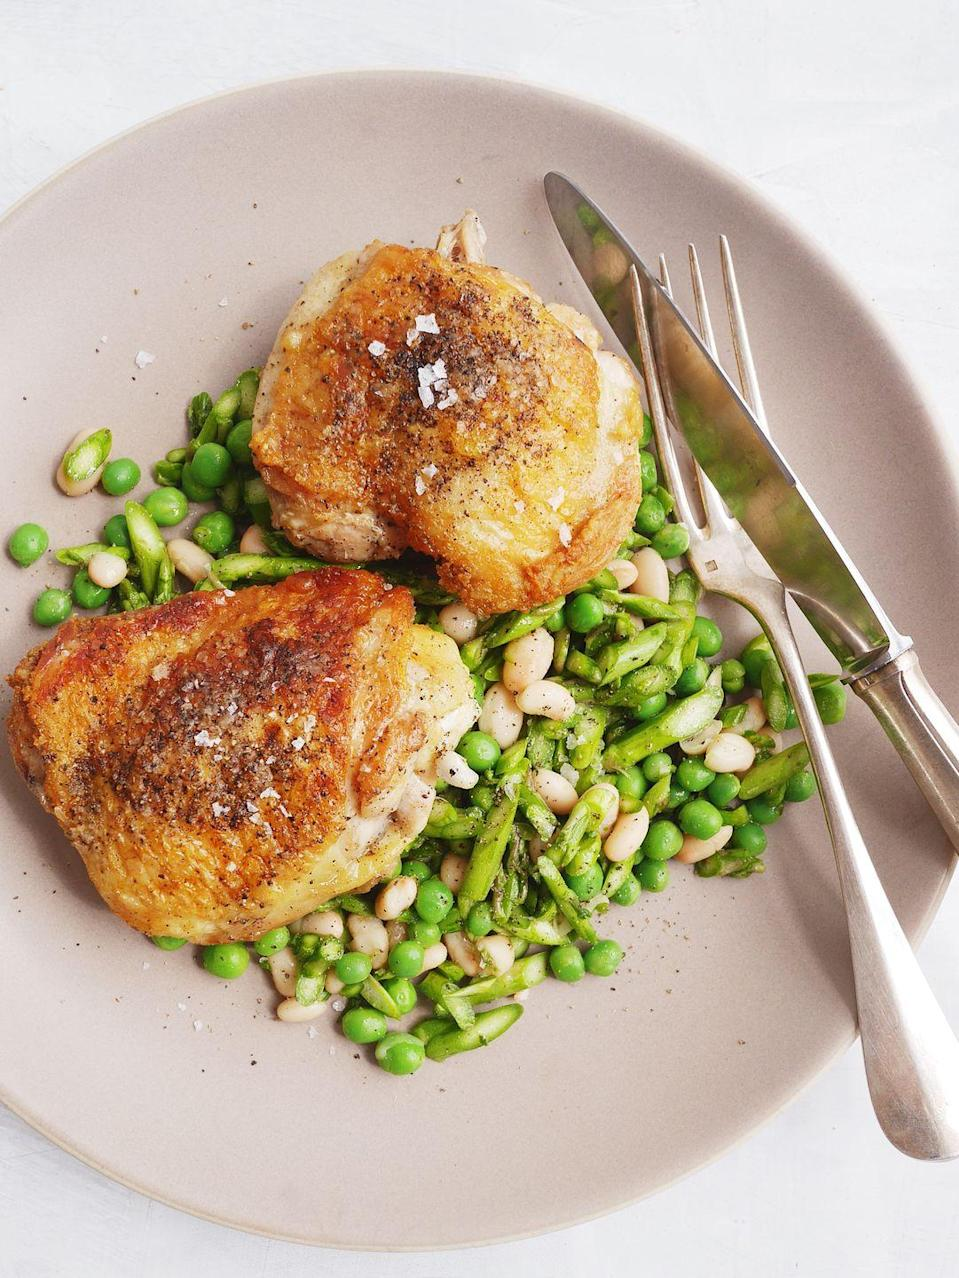 "<p>Spring produce is here and we're all about it.</p><p>Get the recipe from <a href=""https://www.delish.com/cooking/recipe-ideas/recipes/a54115/garlicky-greek-chicken-recipe/"" rel=""nofollow noopener"" target=""_blank"" data-ylk=""slk:Delish"" class=""link rapid-noclick-resp"">Delish</a>.</p>"